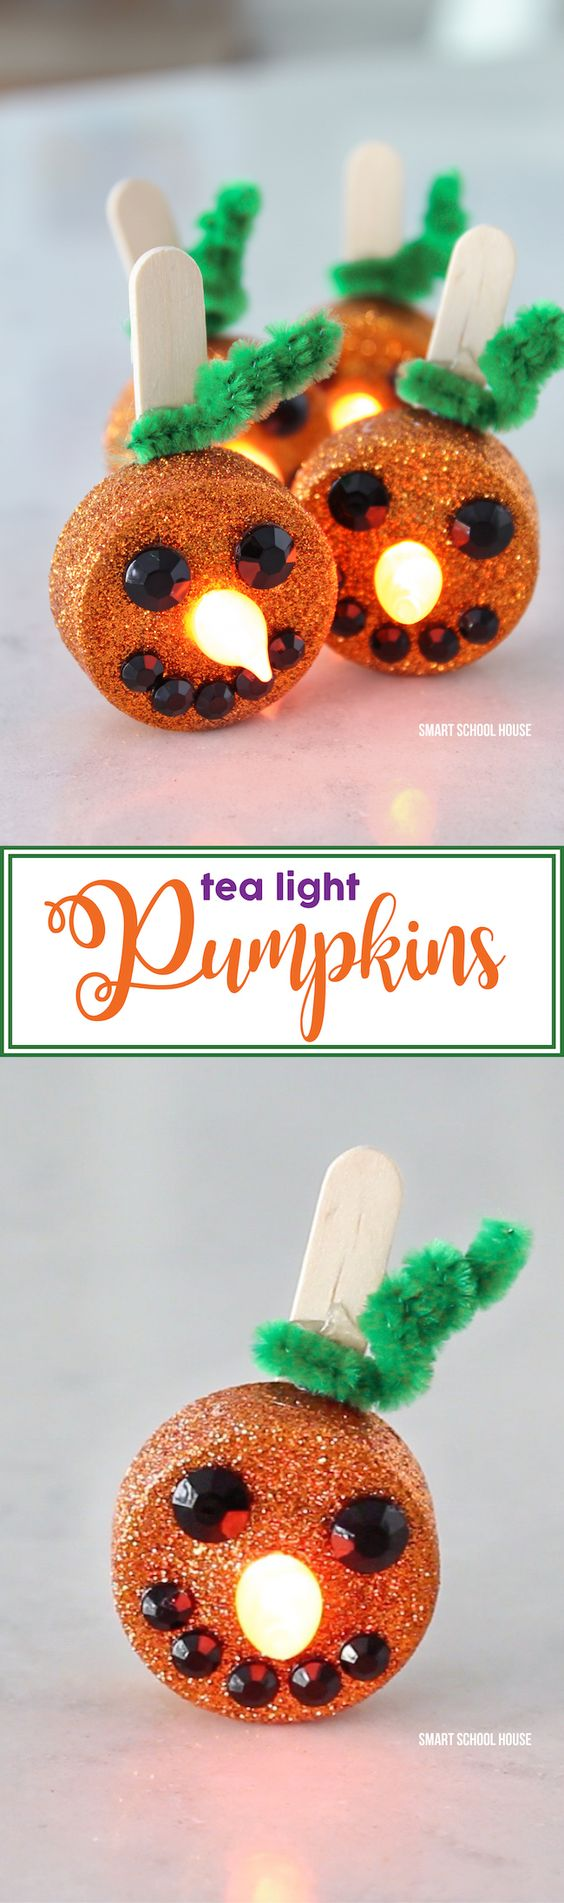 DIY Tea Light Pumpkins for Kids